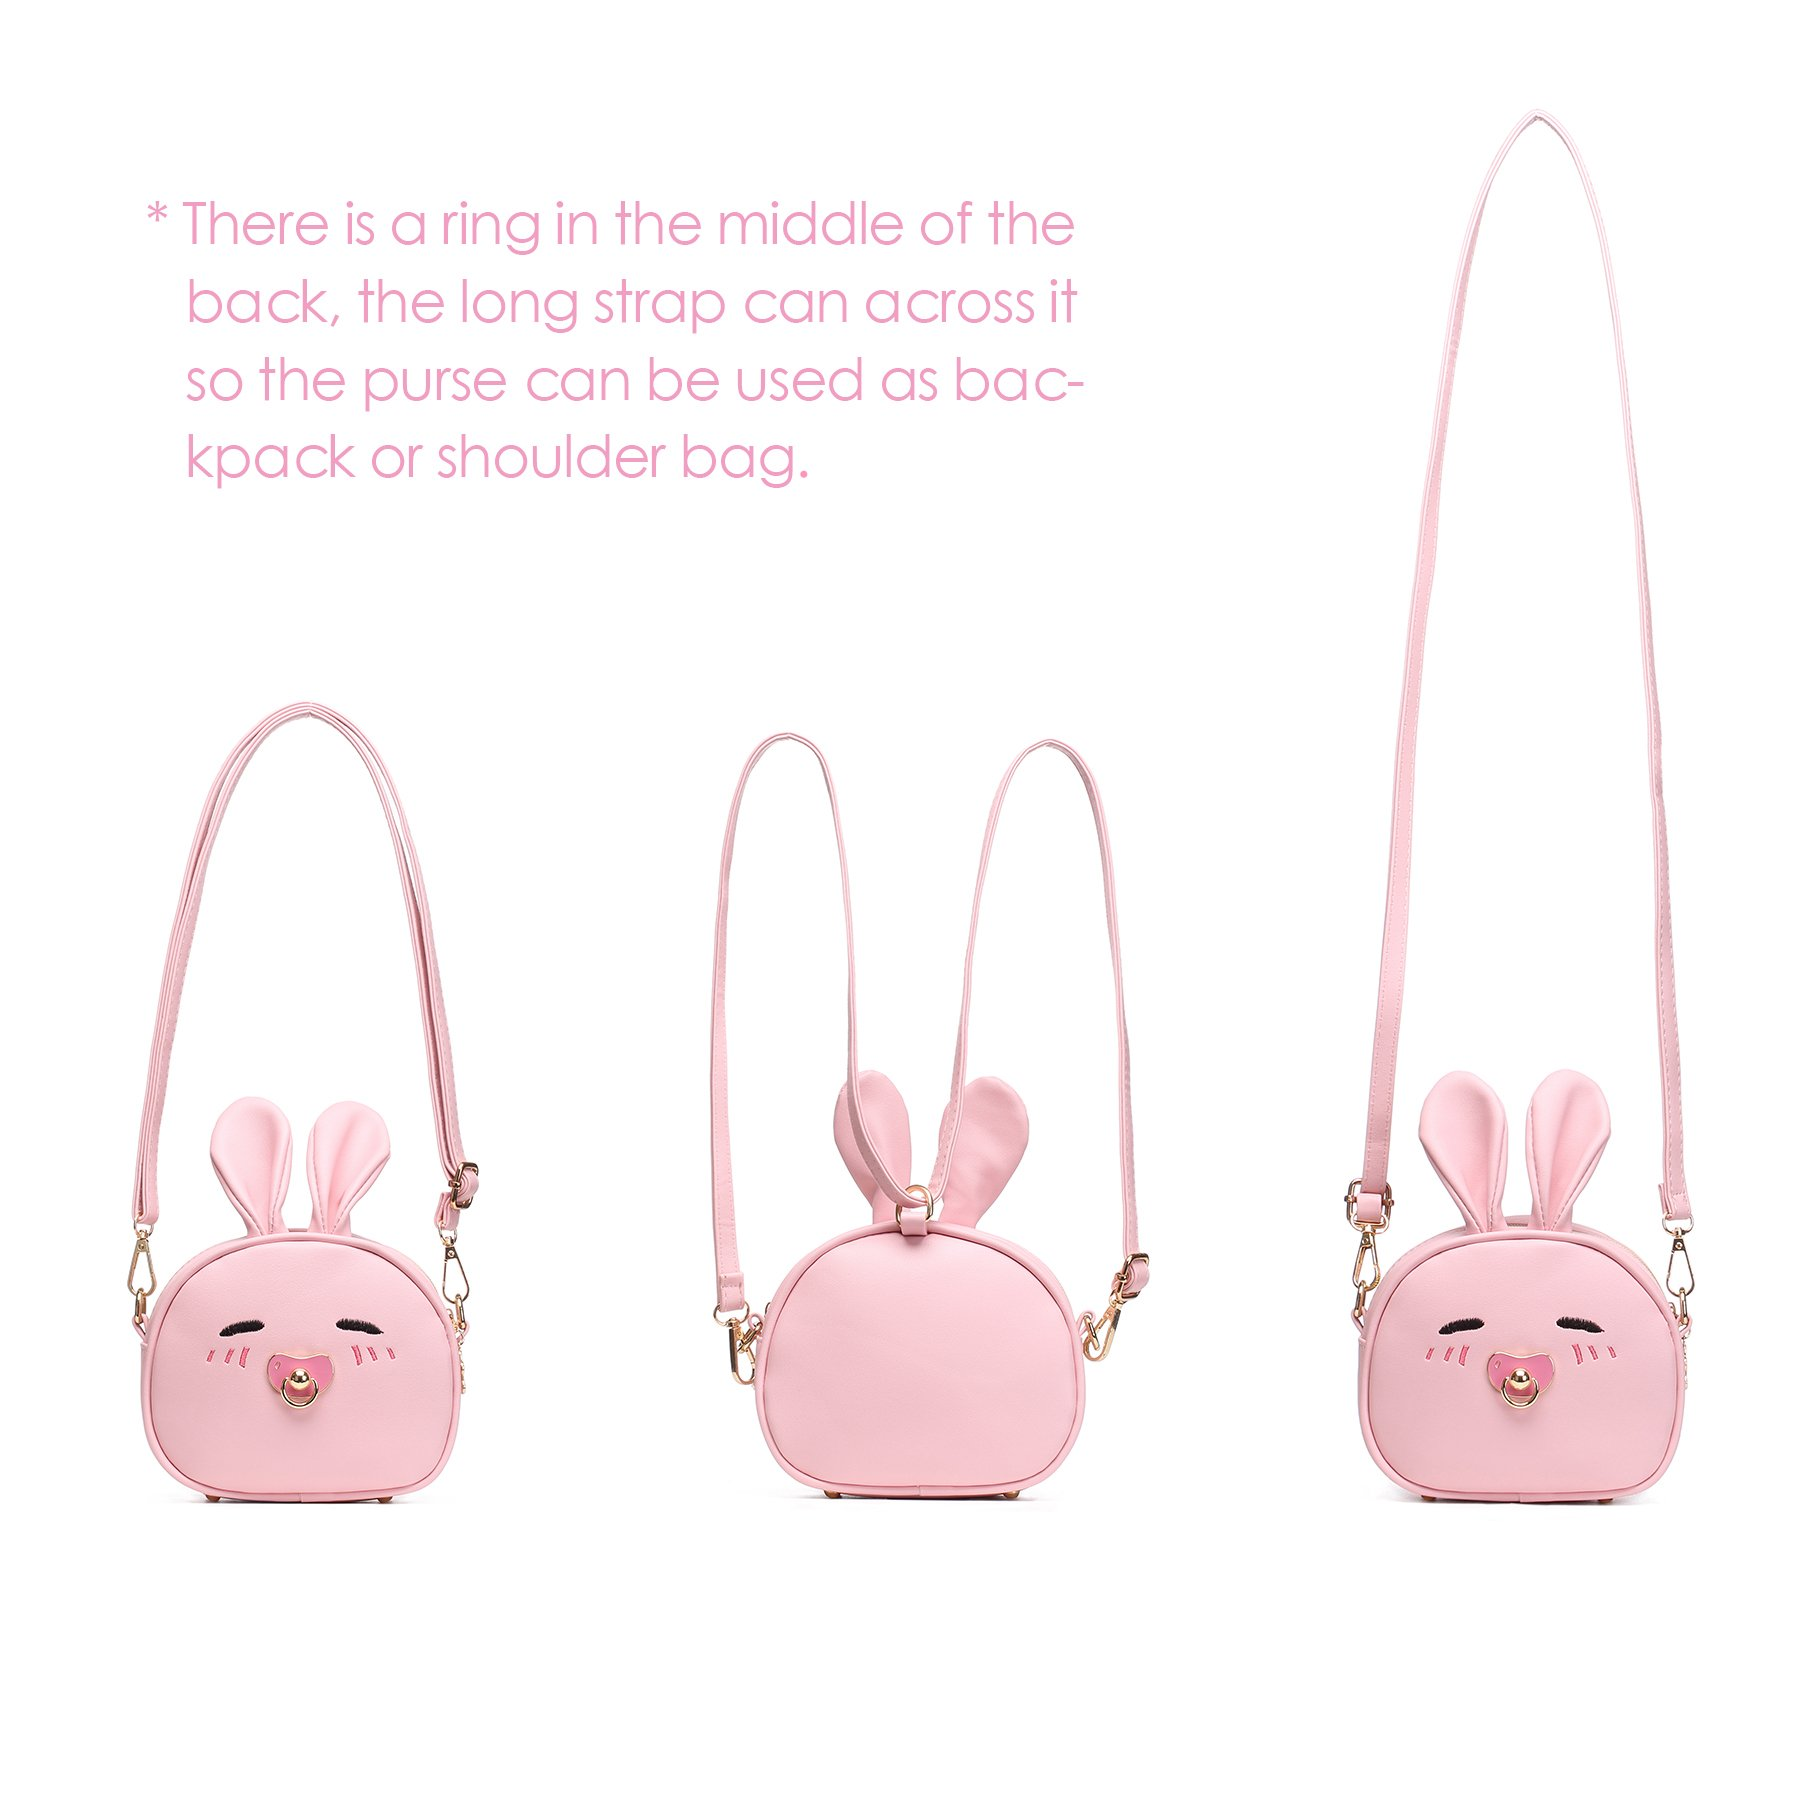 CMK Trendy Kids My First Purse for Toddler Kids Girls Cute Shoulder Bag Messenger Bags with Bunny Ear and Double Slide Zipper Novelty Birthday Gift (82011_Pink) by CMK Trendy Kids (Image #5)